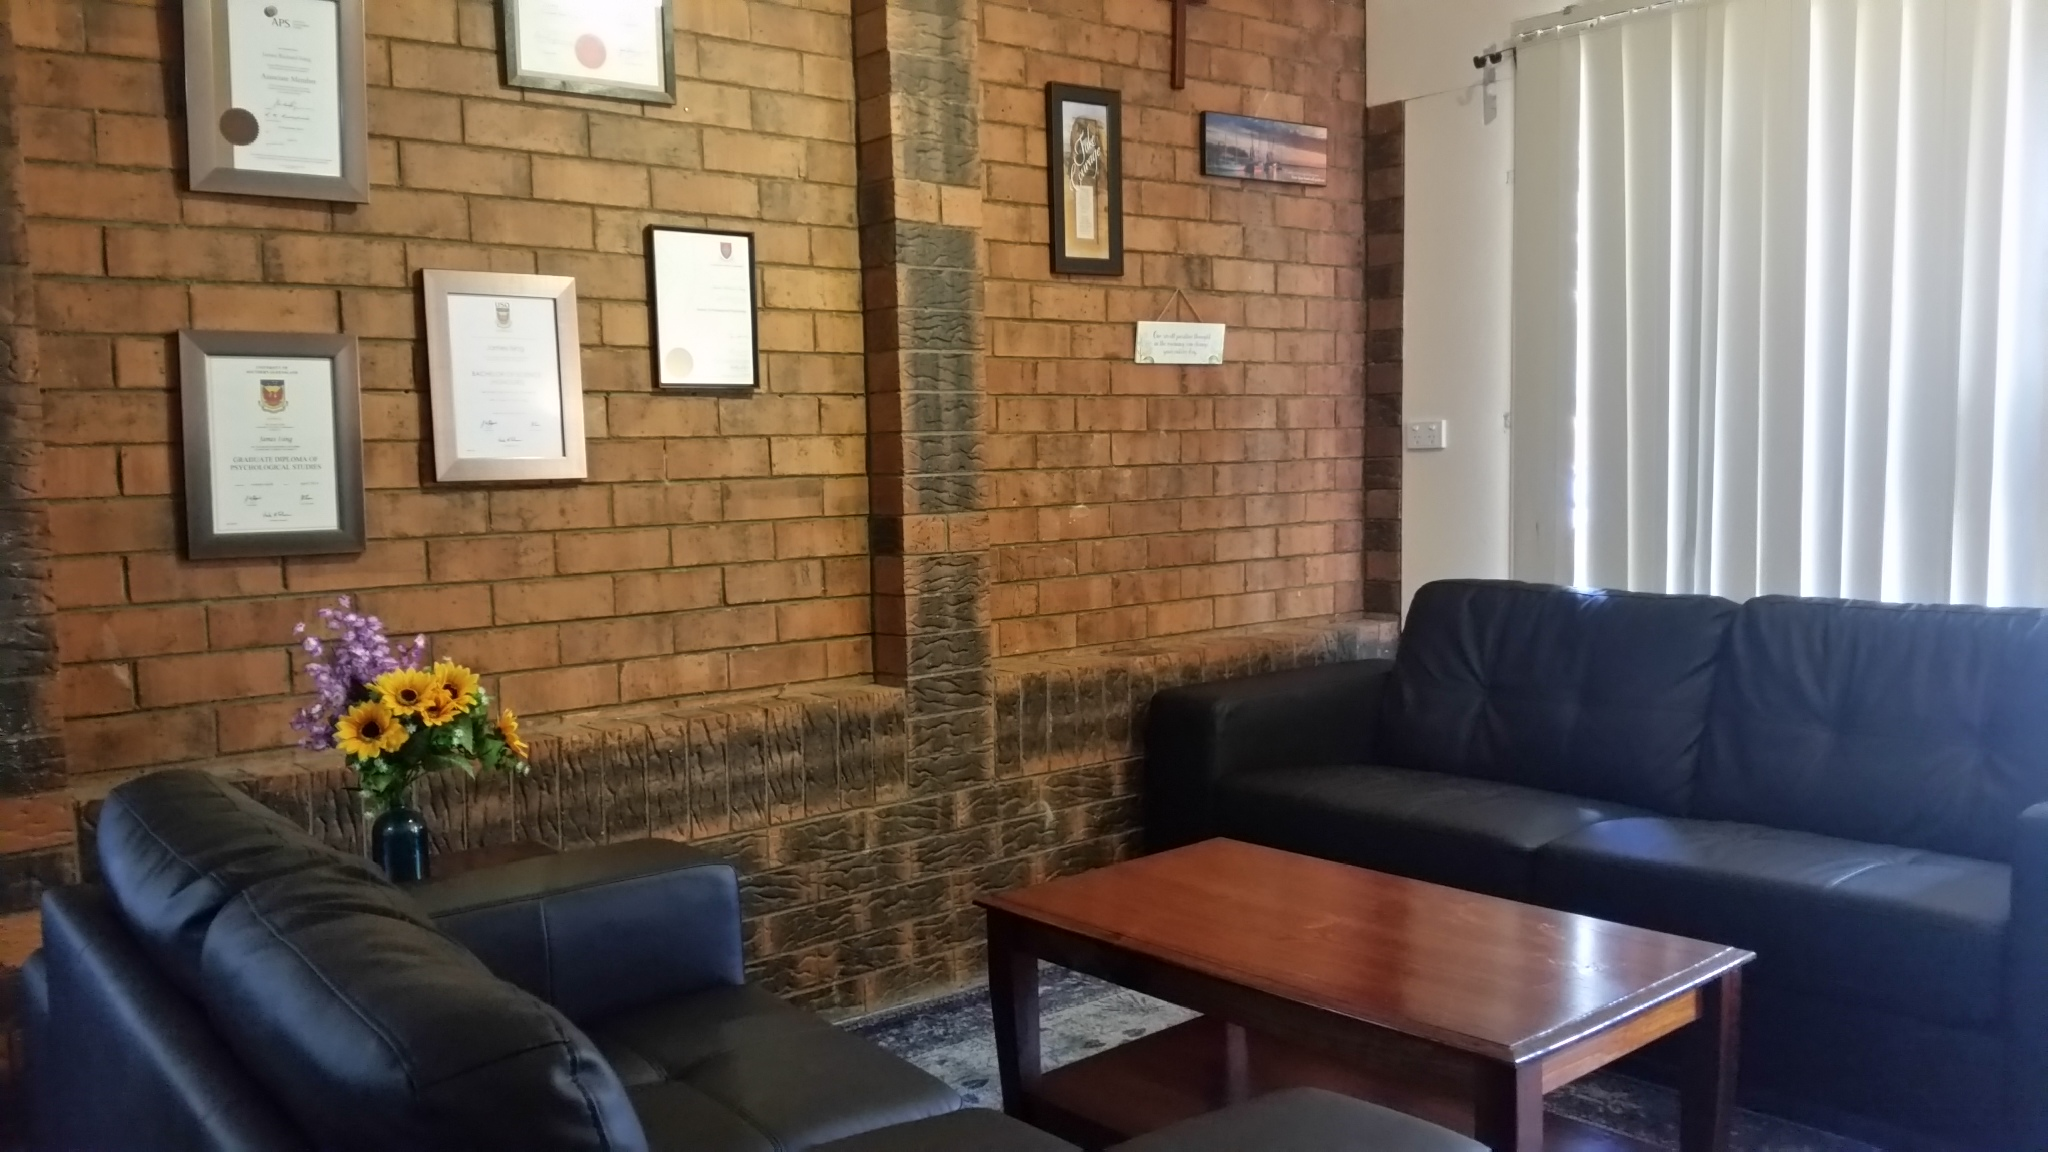 toowoomba counselling and psychology service